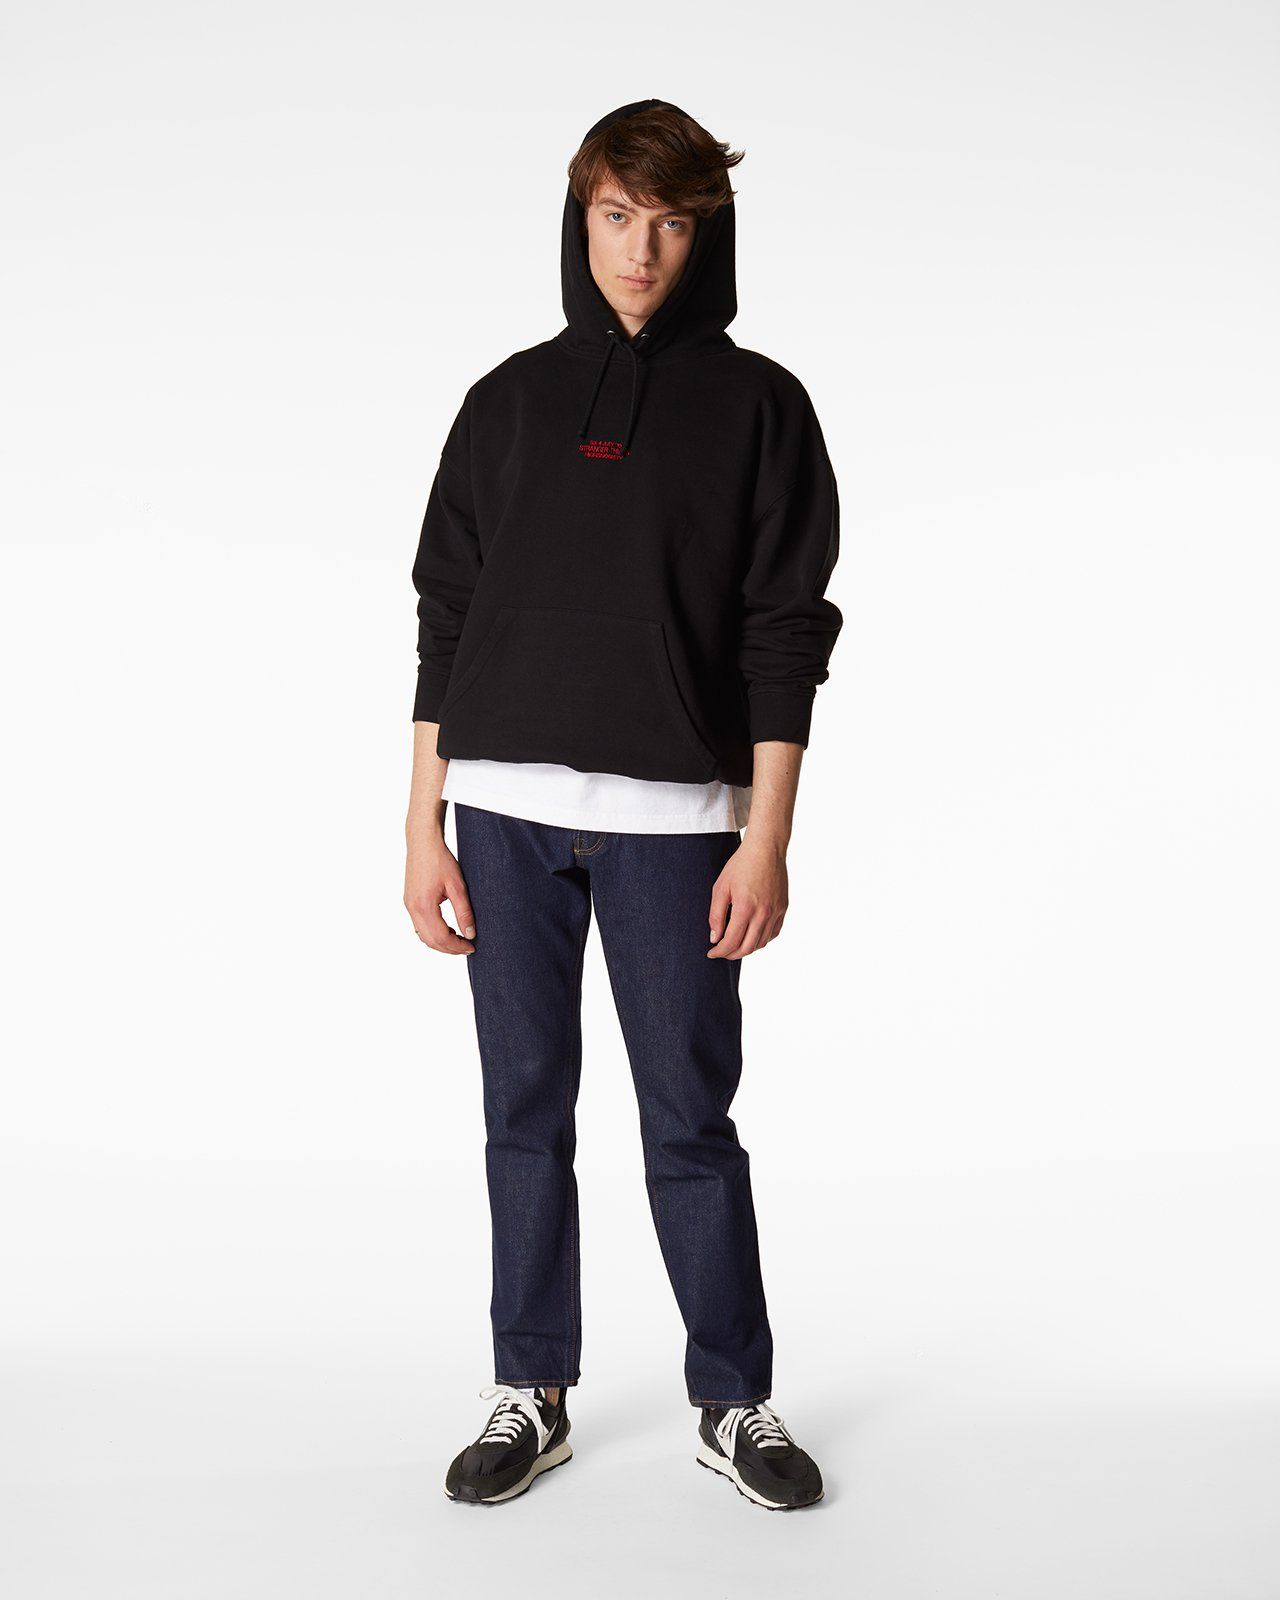 Stranger Things 3 x Highsnobiety Logo Hoodie - Black - Image 6